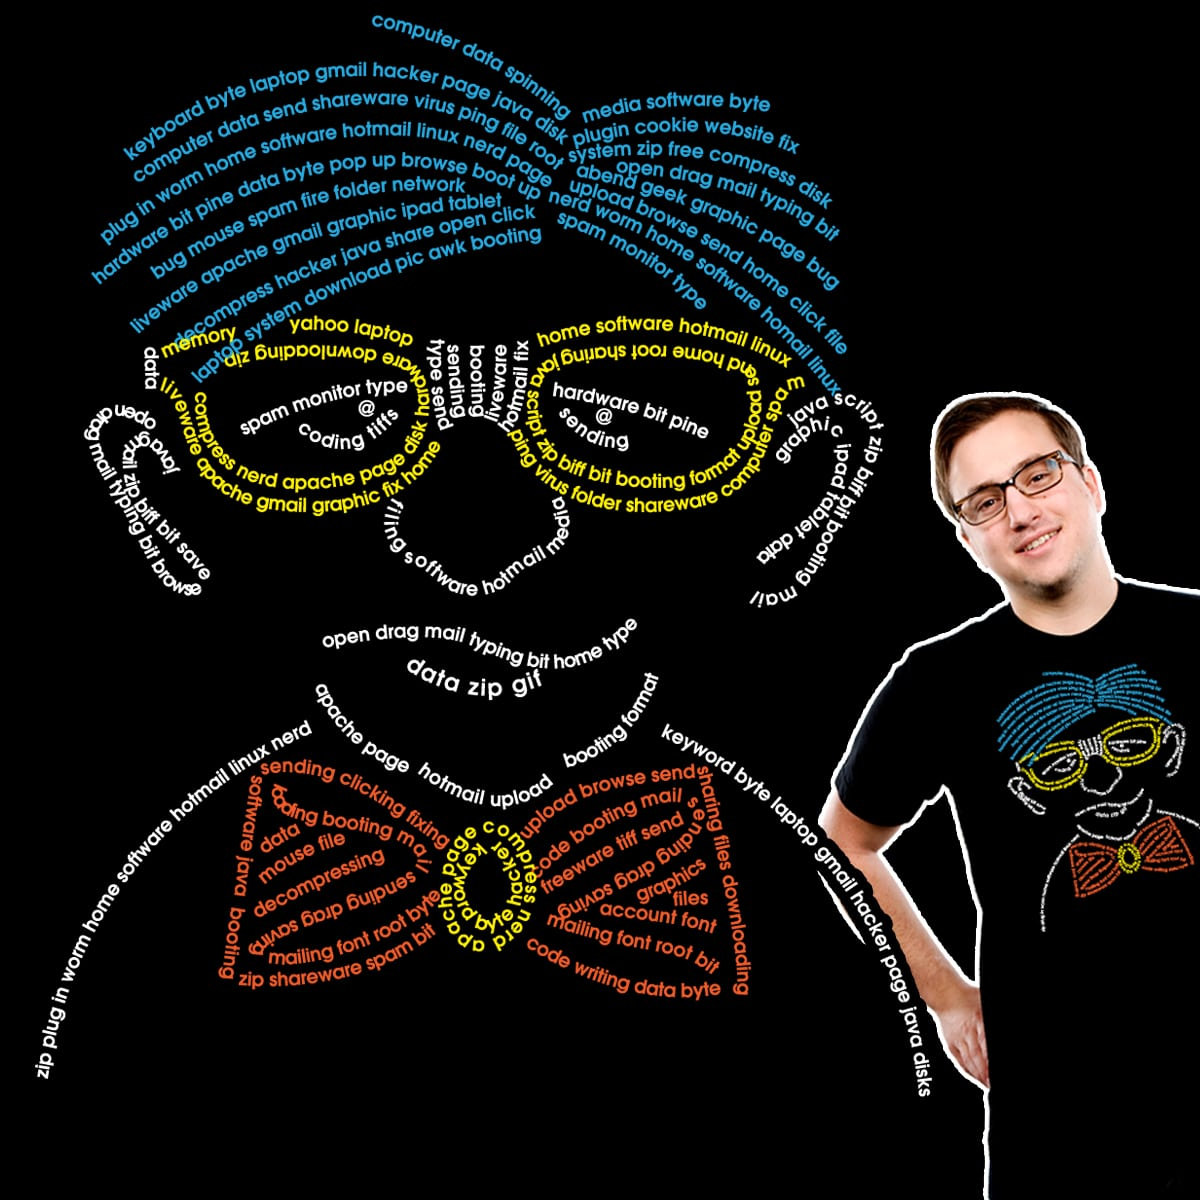 OLD GEEKS ARE CHIC by Twmom on Threadless